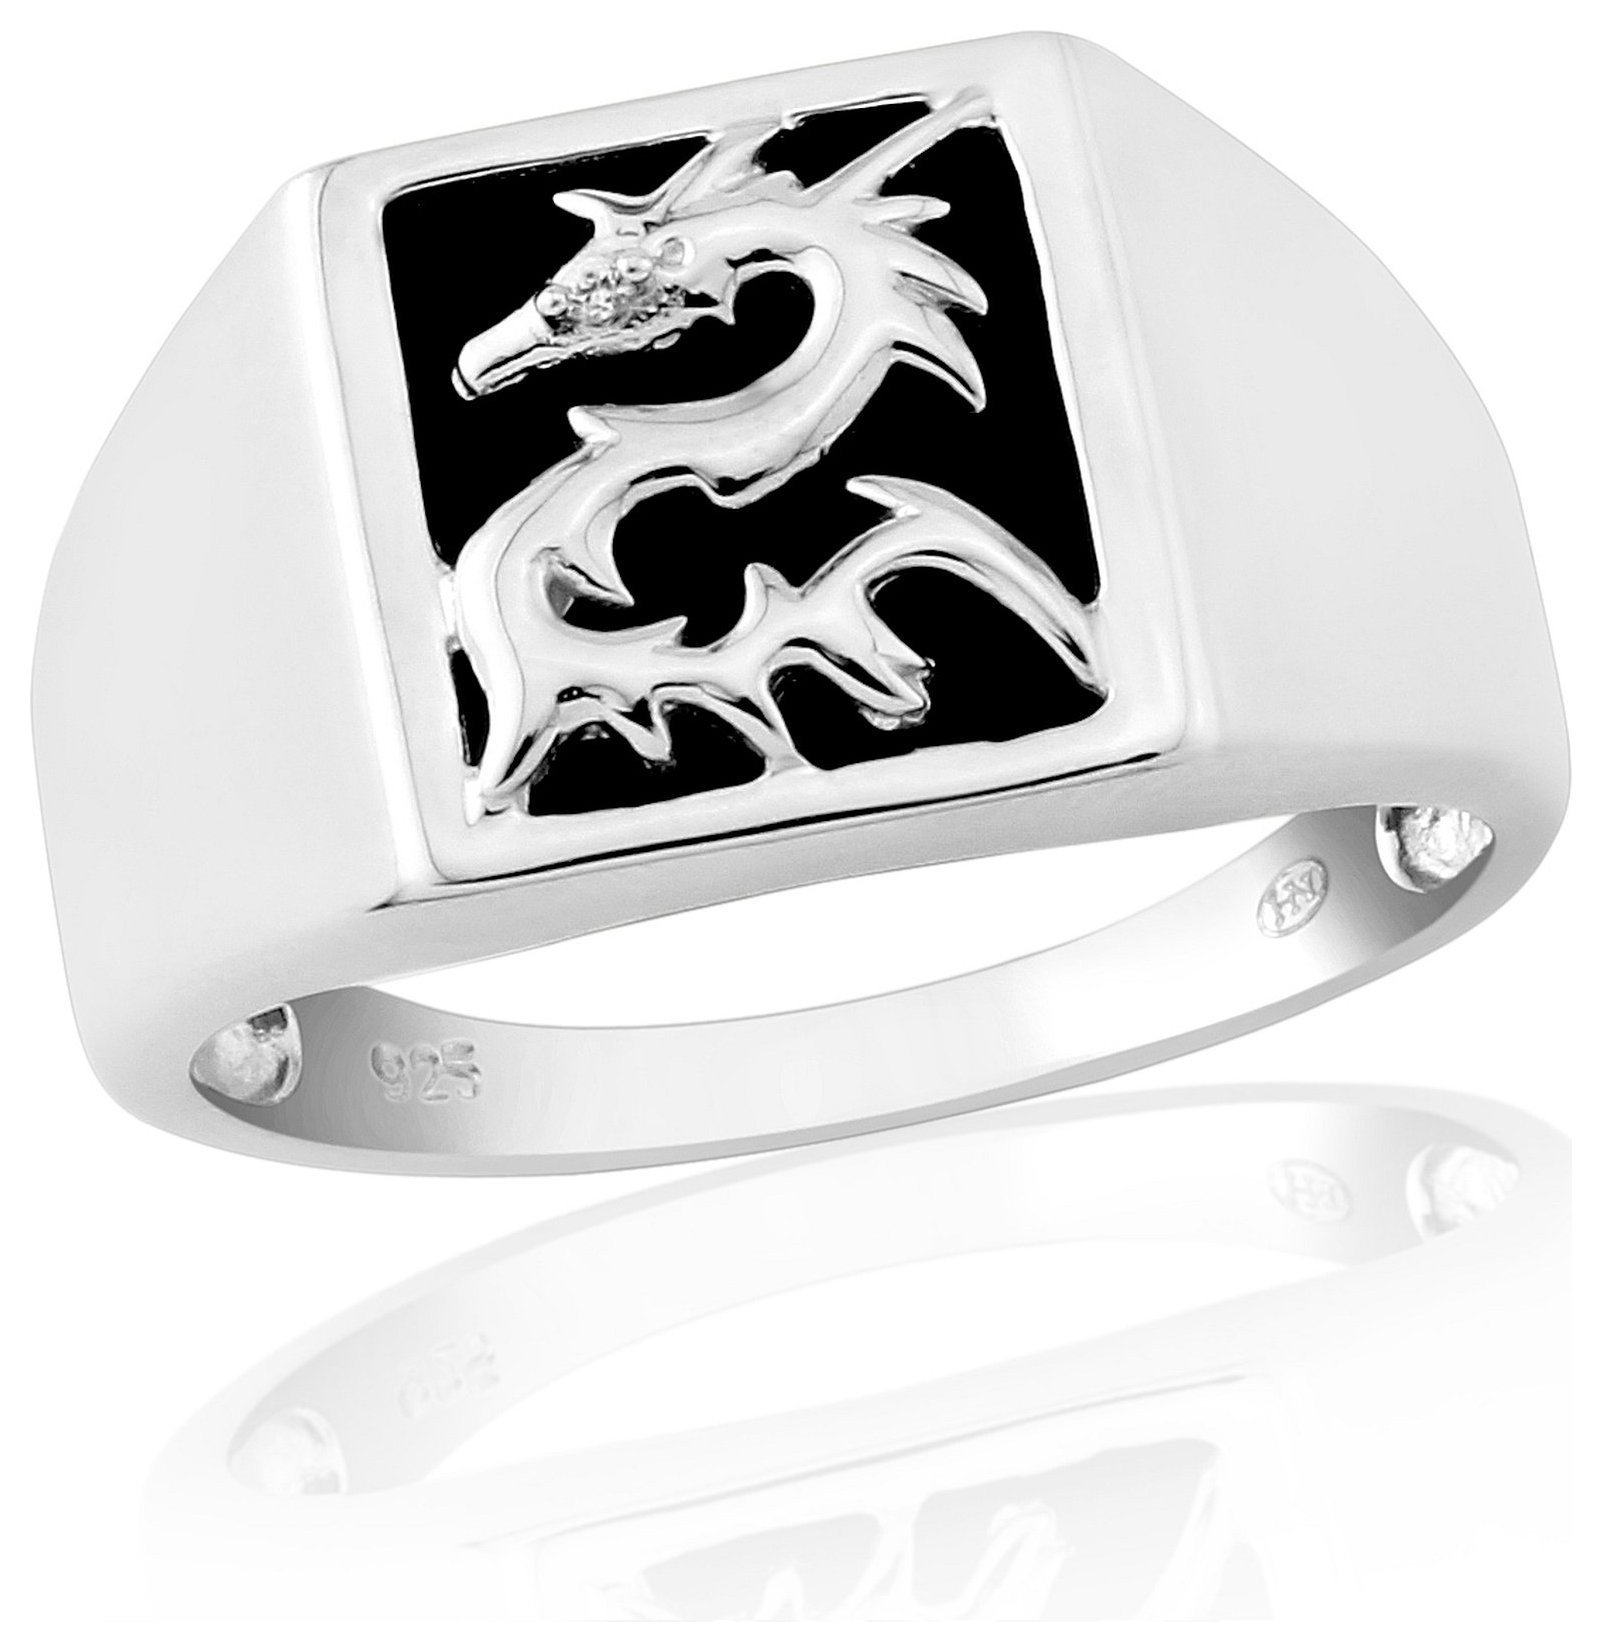 Buy Sterling Silver Black yx CZ Dragon Signet Ring R at Argos